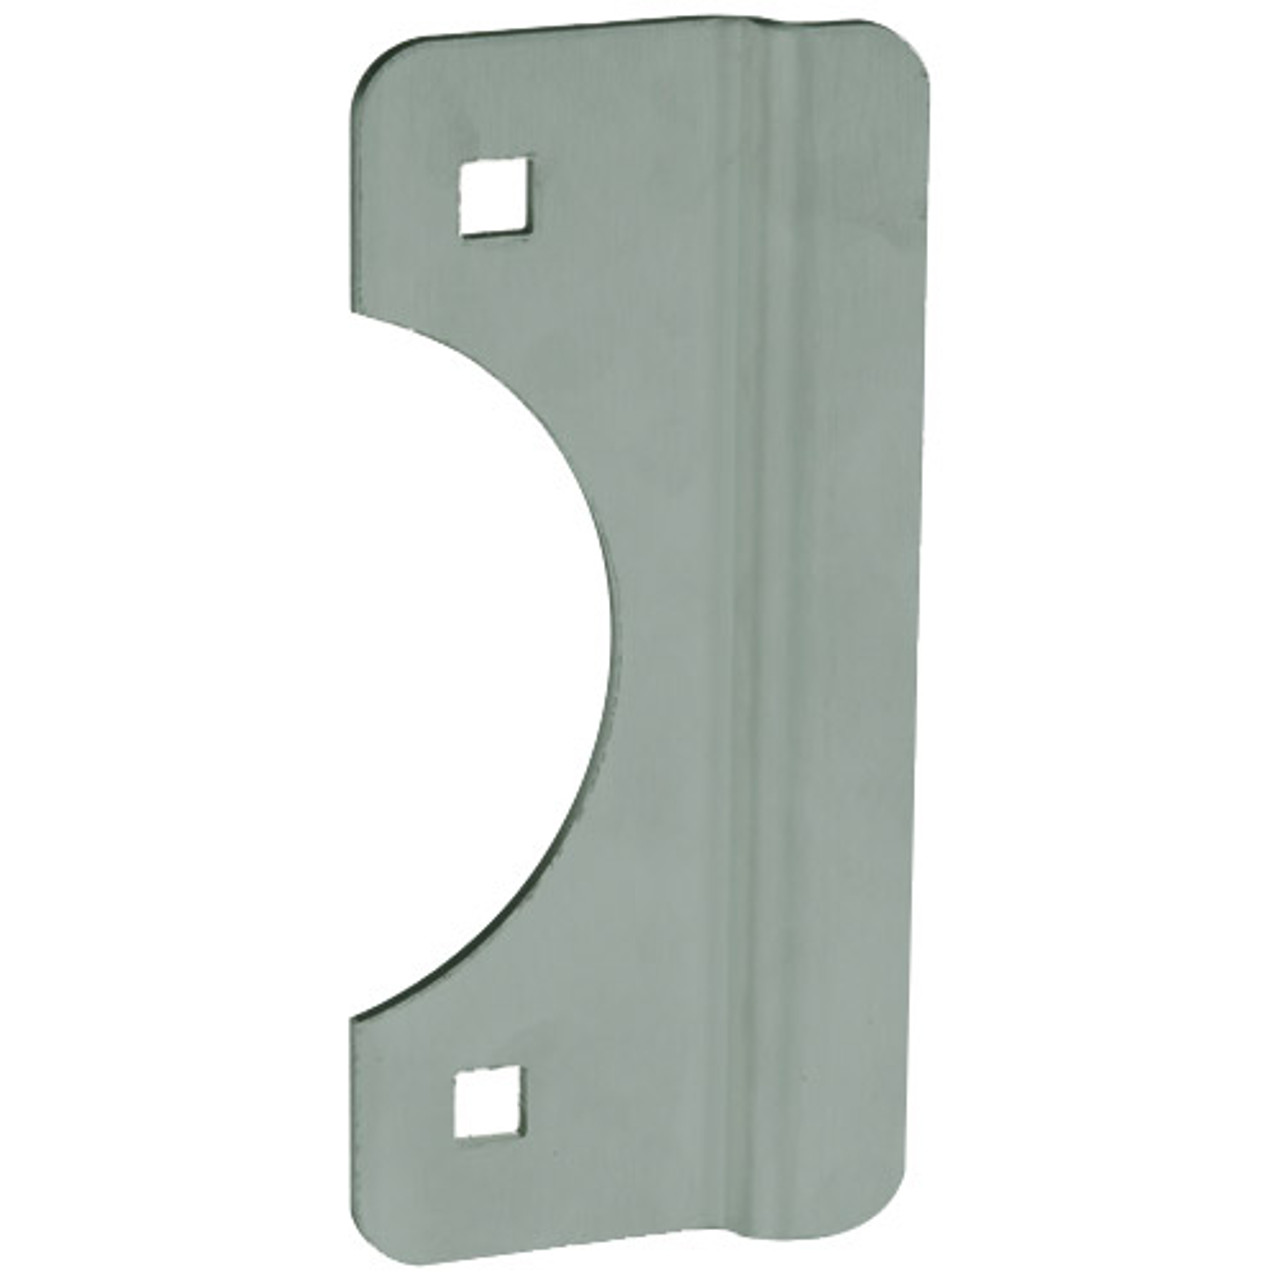 SLP-106-EBF-630 Don Jo Latch Protector in Stainless Steel Finish